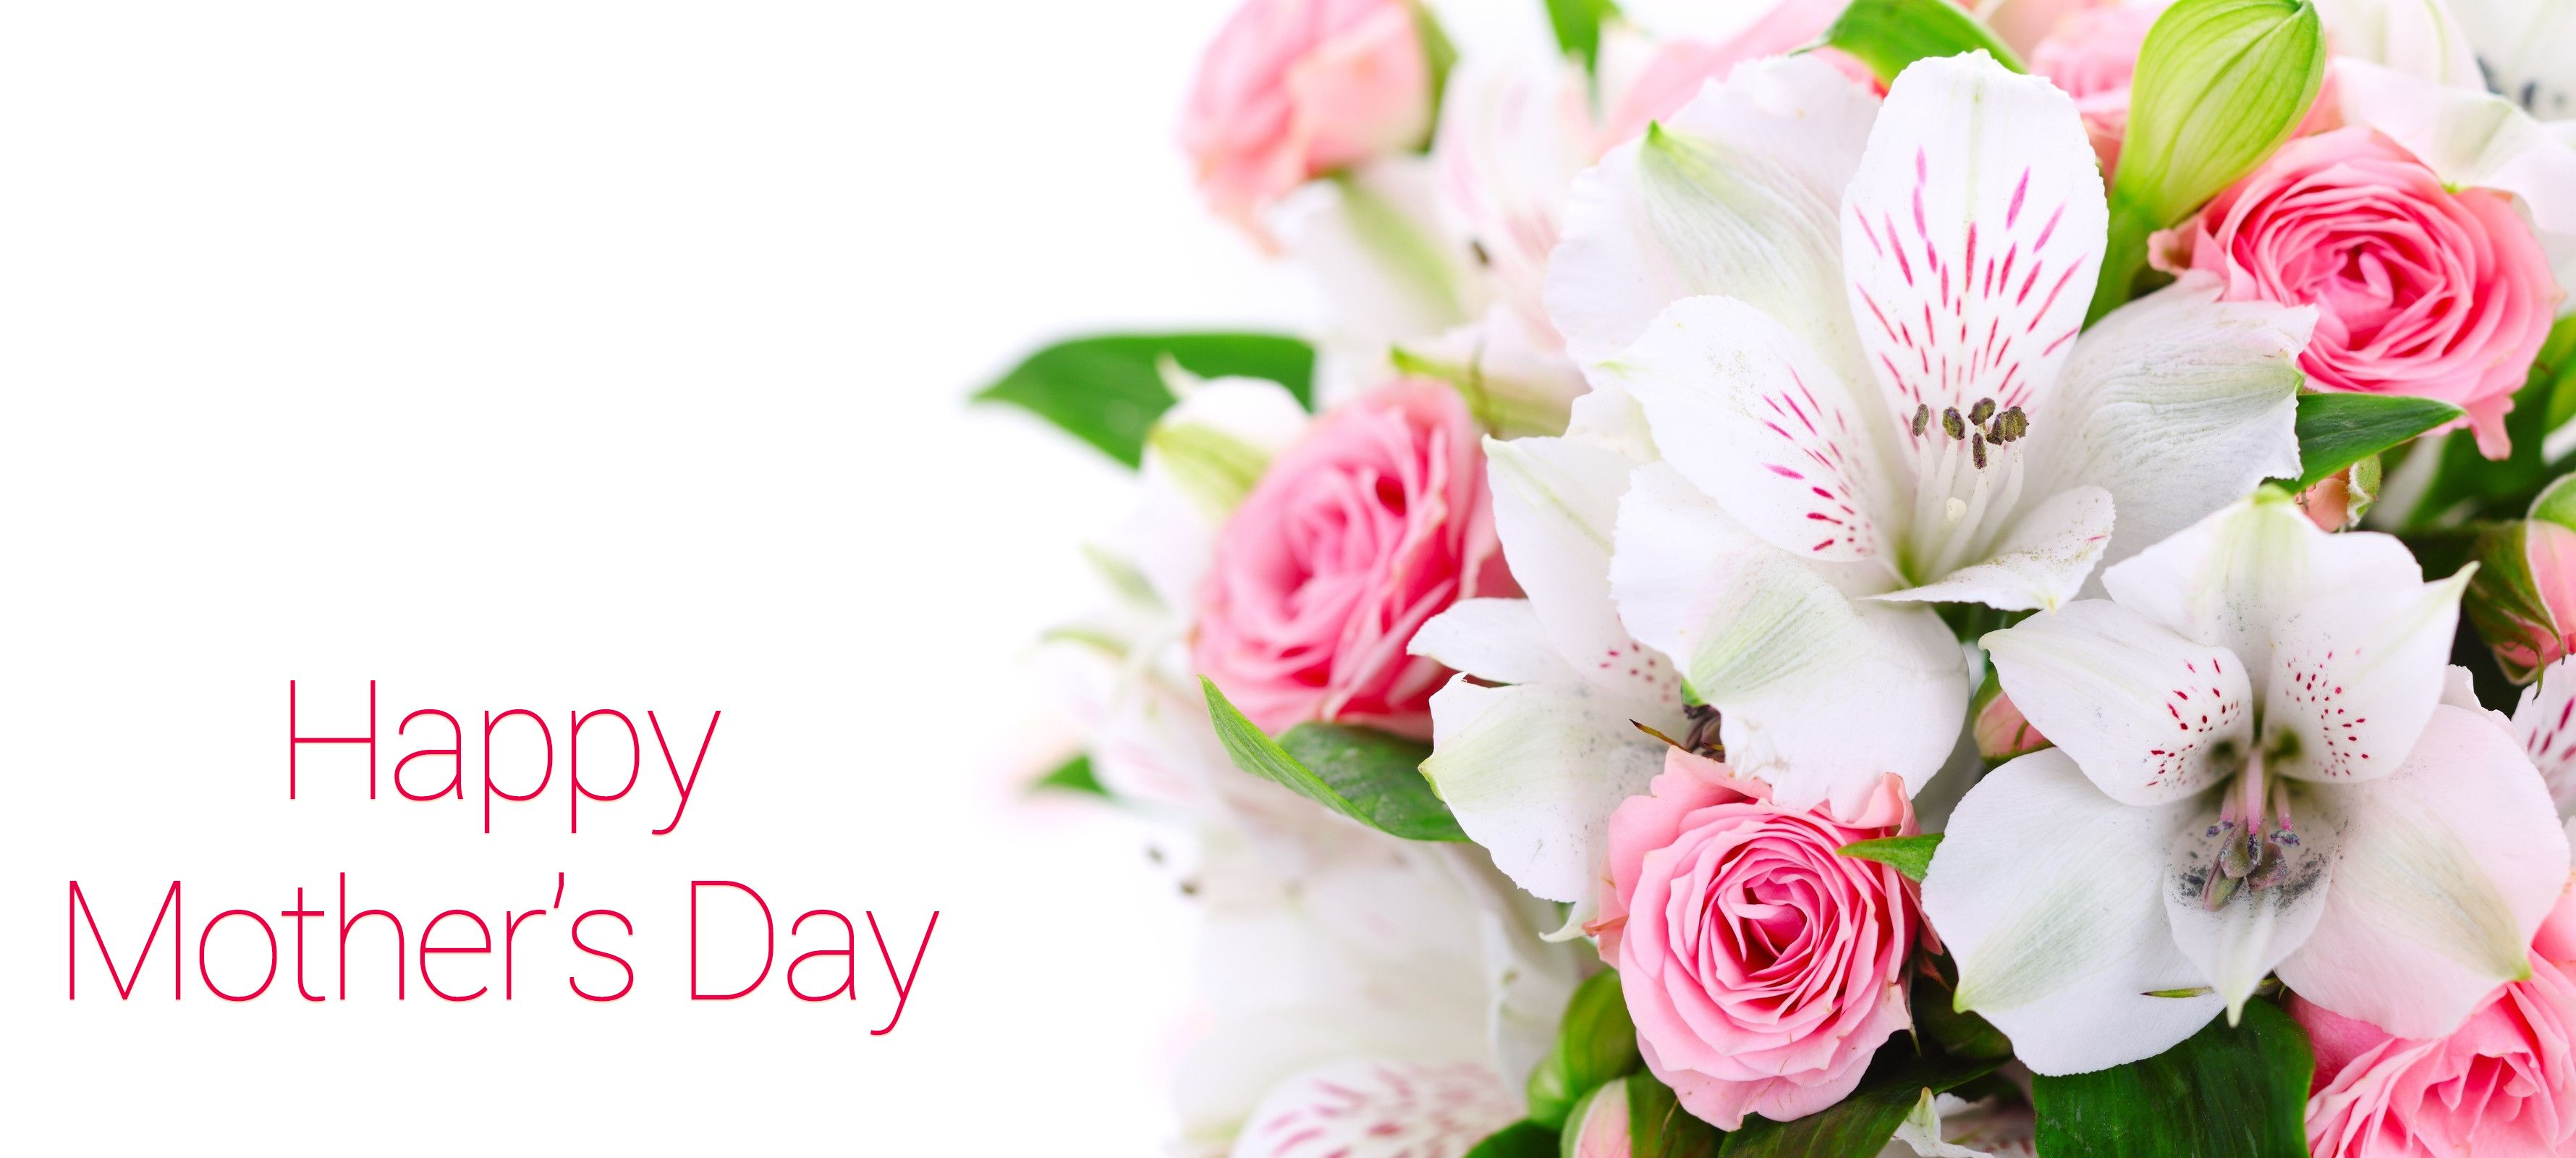 Wallpaper Of Happy Mothers Day: Happy Mother's Day HD Wallpaper